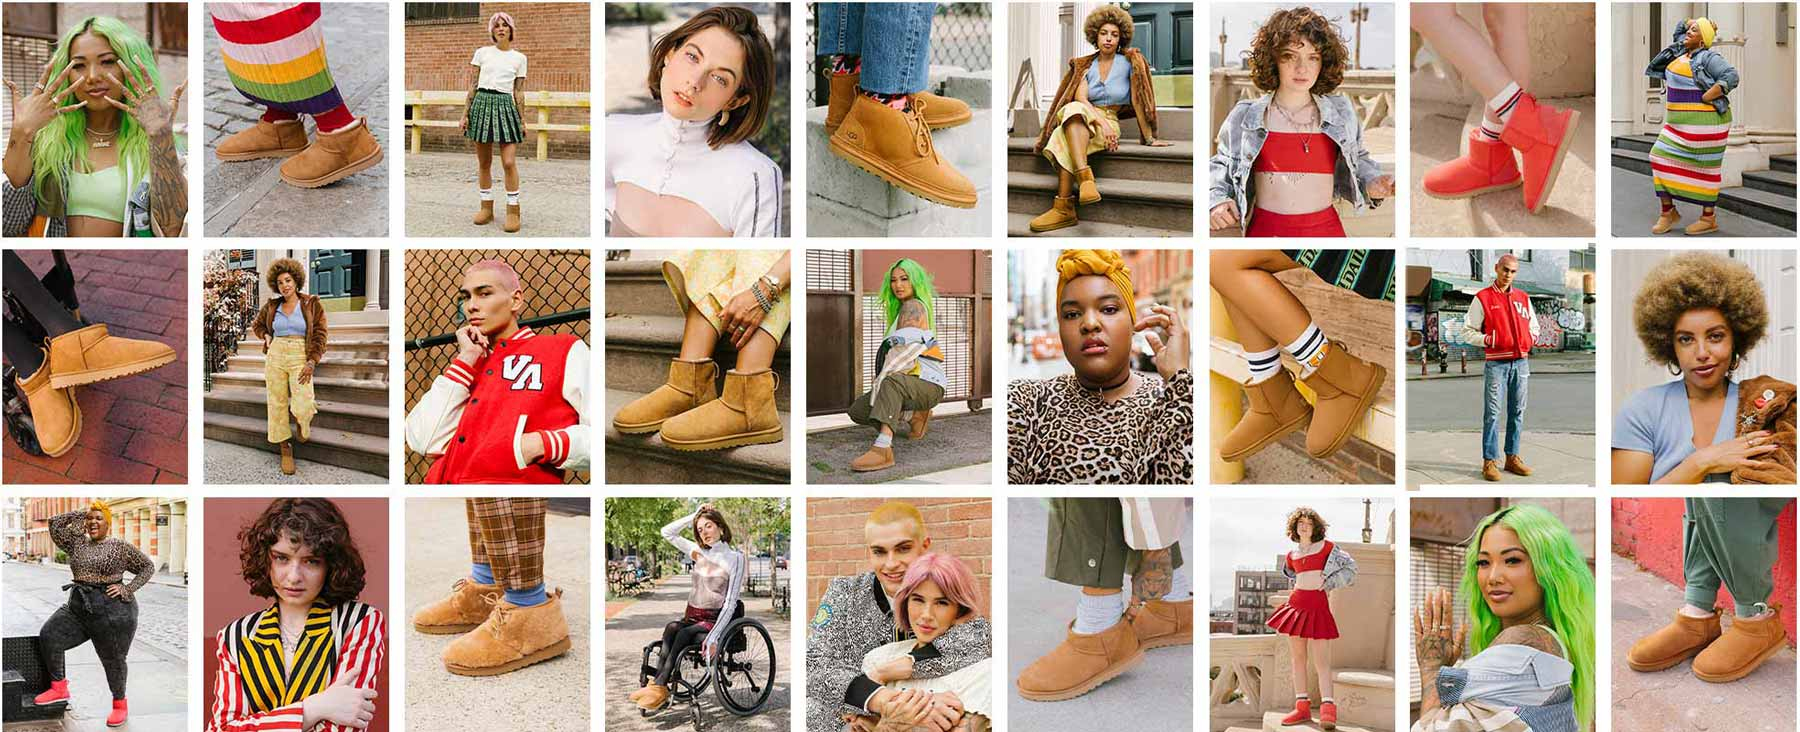 Ugg Feel You image with many people wearing colorful clothes and slippers.